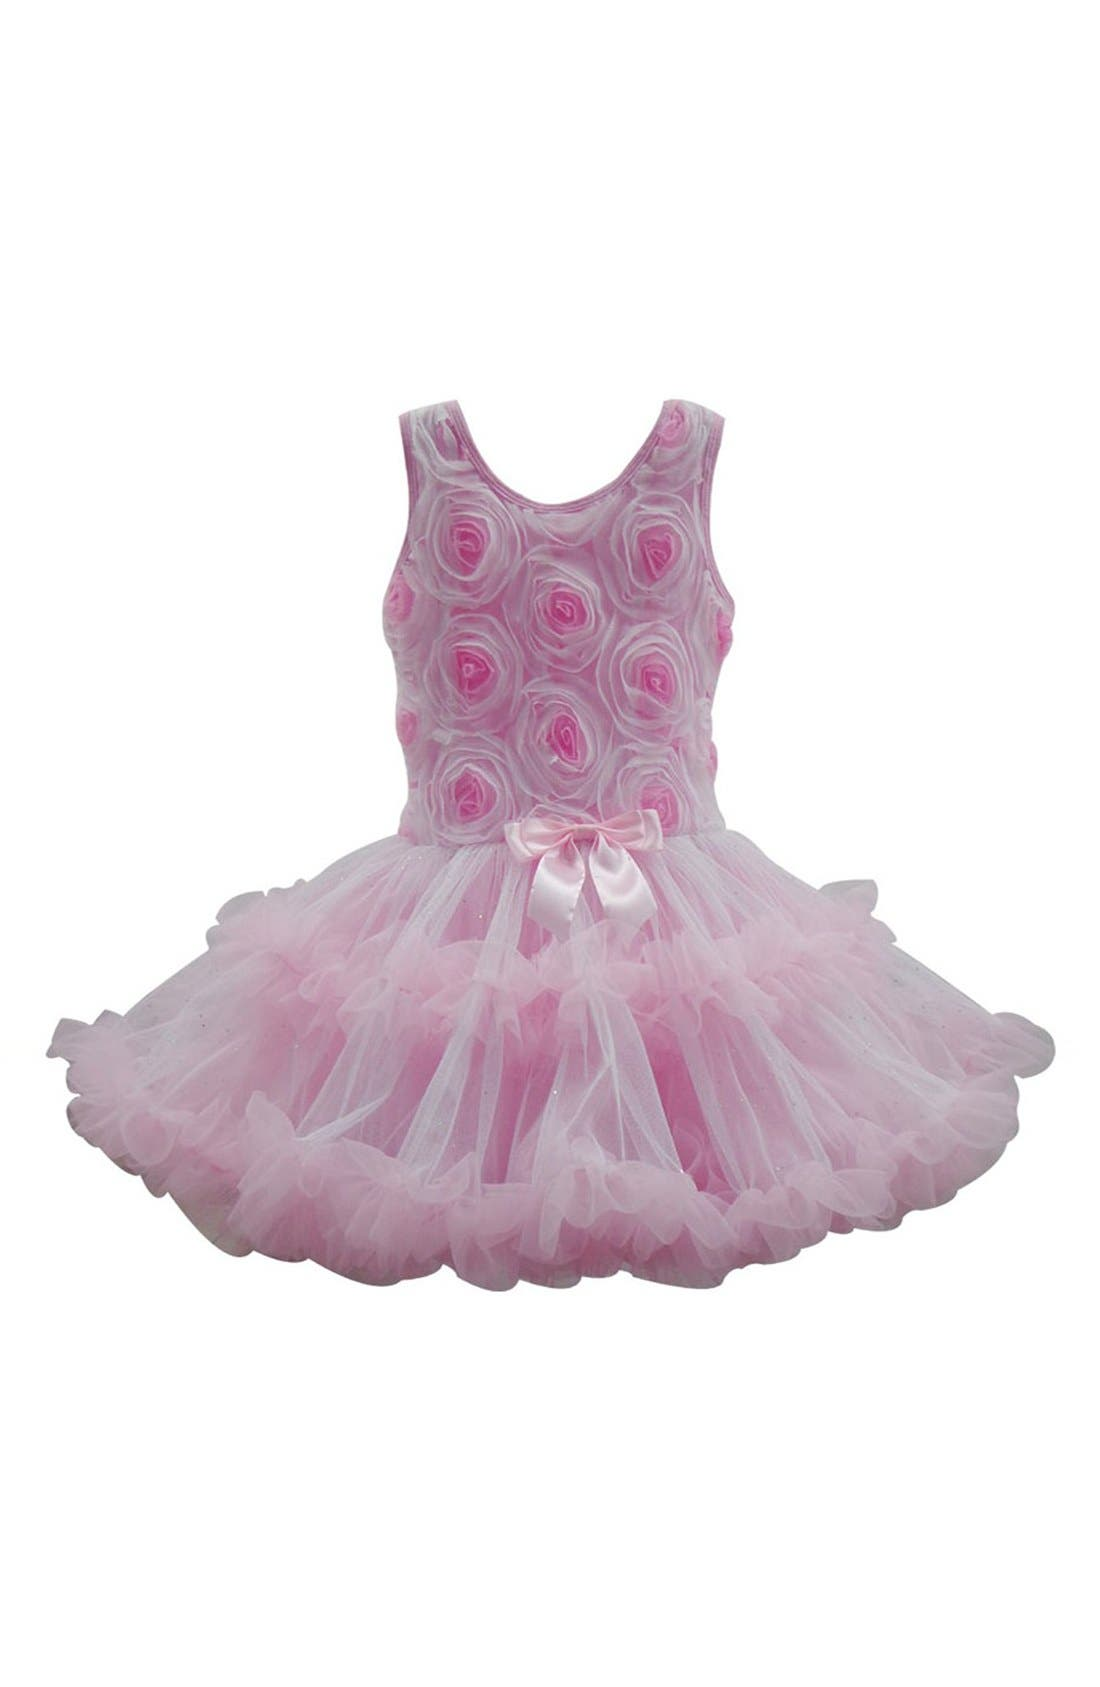 Ribbon Rosette Flower Petidress,                             Main thumbnail 1, color,                             650